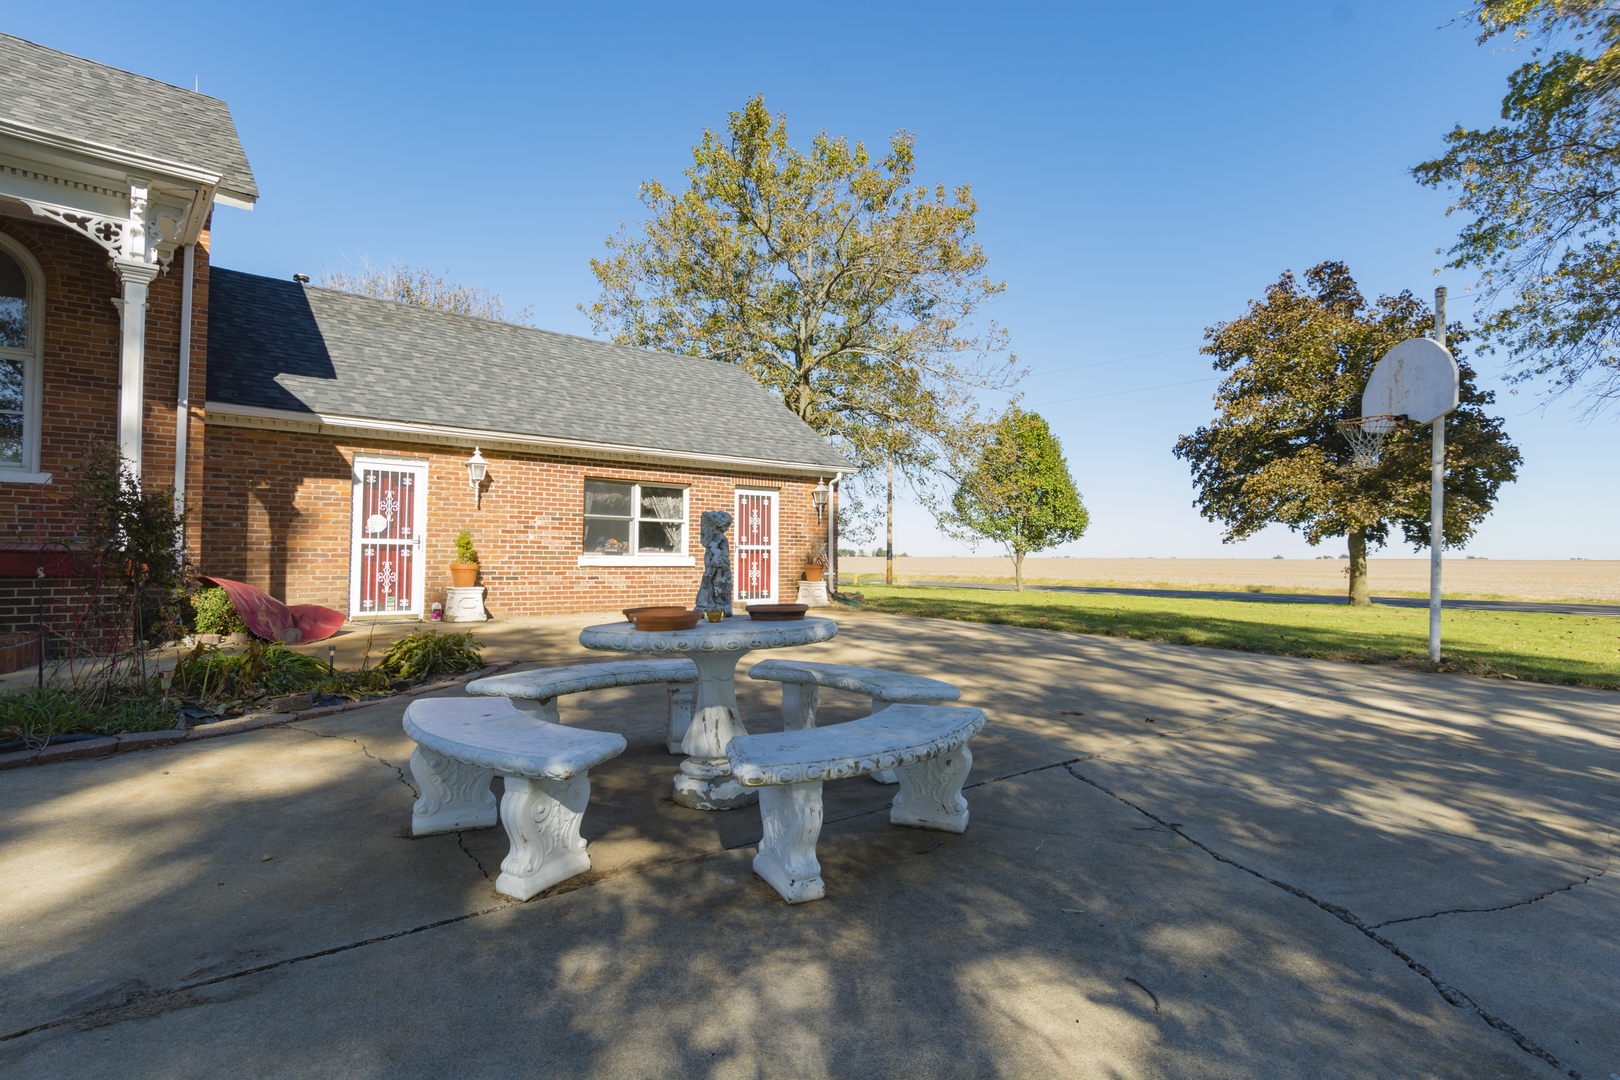 250 North 1500 East, ATWOOD, Illinois, 61913